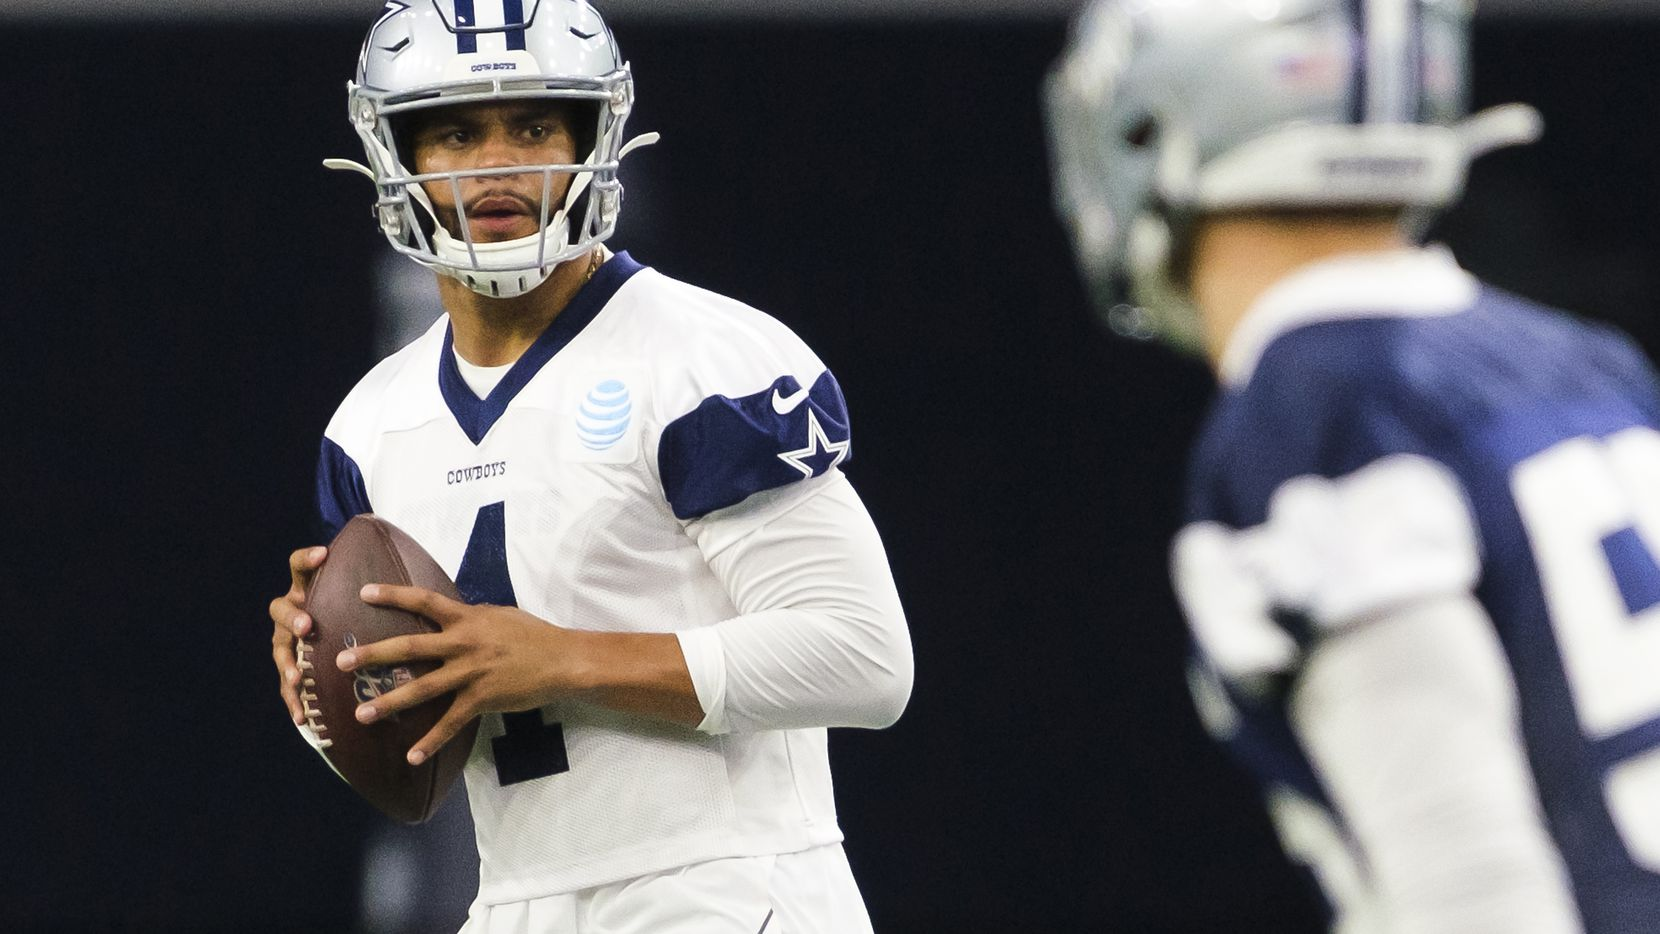 Dallas Cowboys quarterback Dak Prescott (4) looks to pass as linebacker Leighton Vander Esch (55) defends during a team OTA practice at The Star on Wednesday, June 5, 2019, in Frisco. (Smiley N. Pool/The Dallas Morning News)